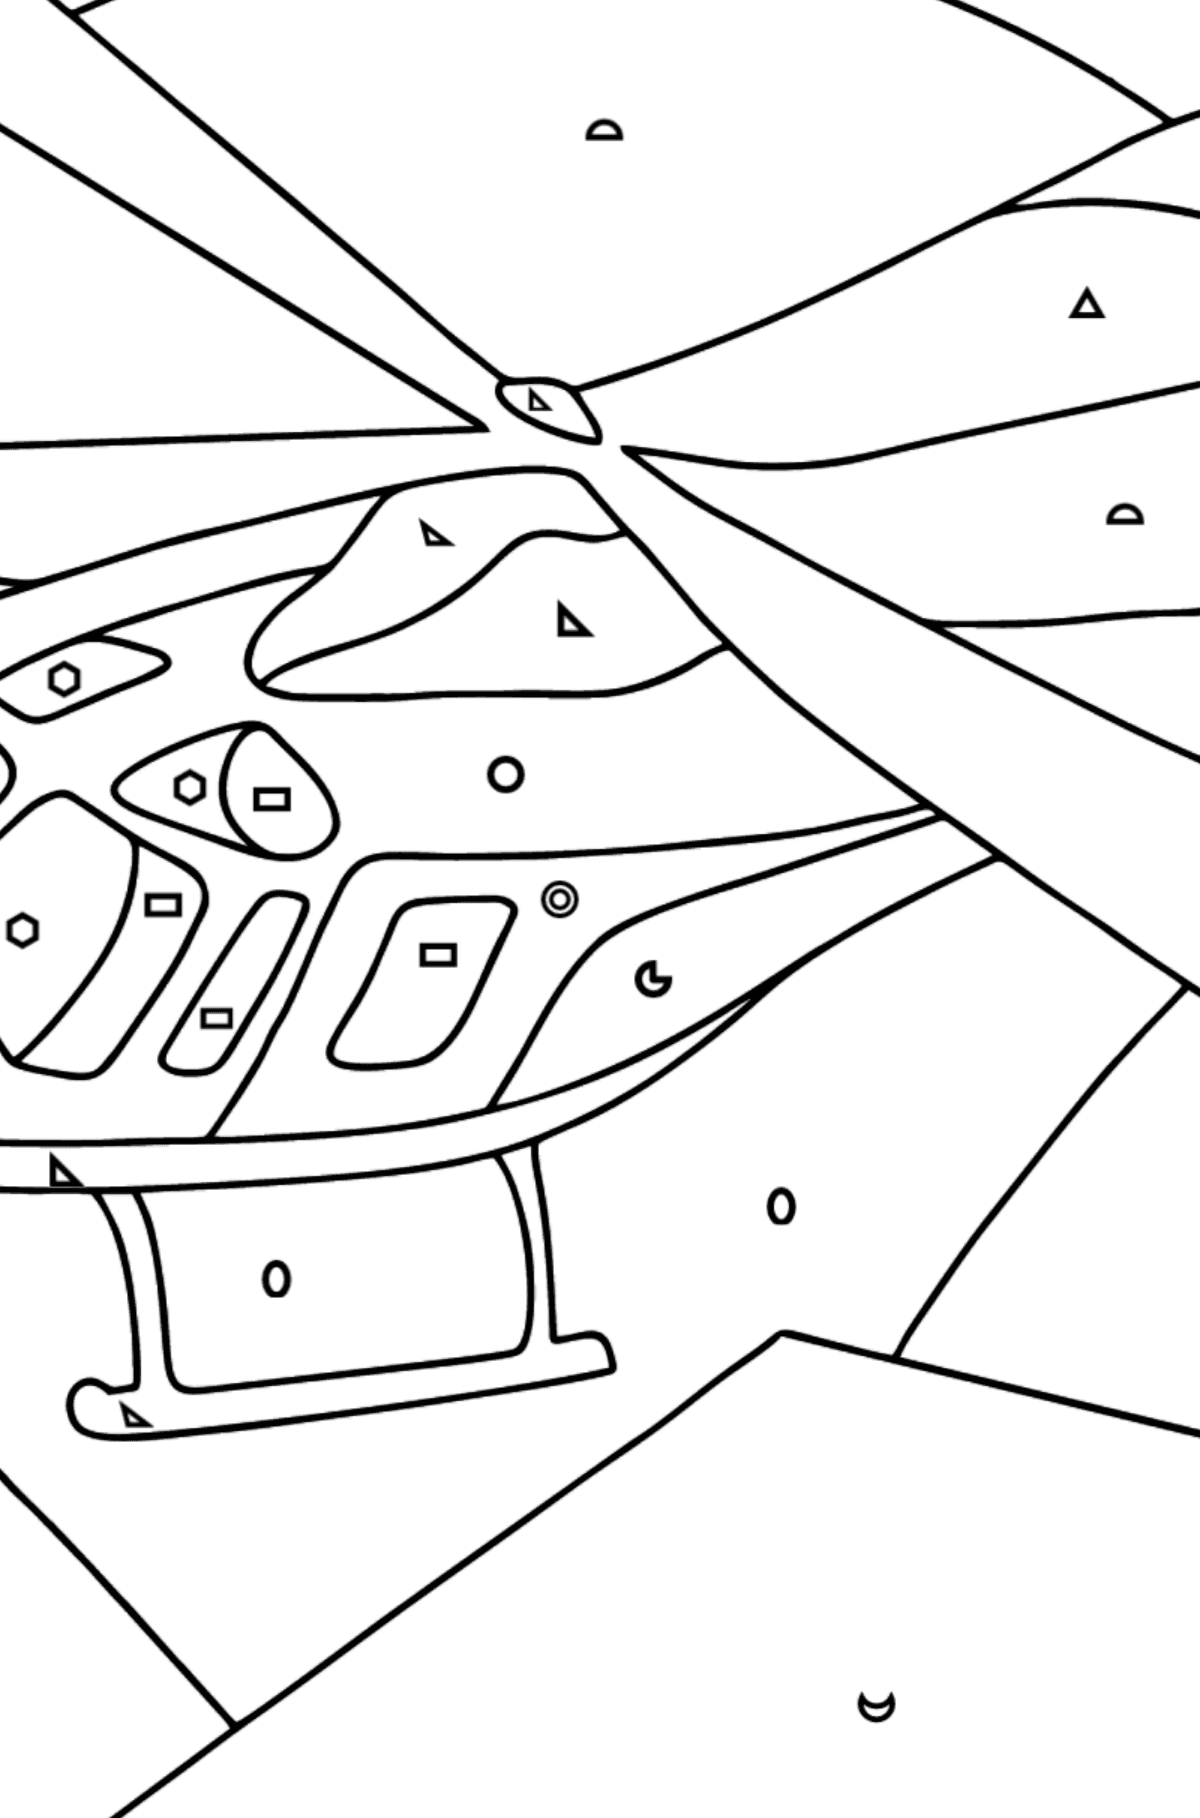 Coloring Page - A Sport Helicopter - Coloring by Geometric Shapes for Kids